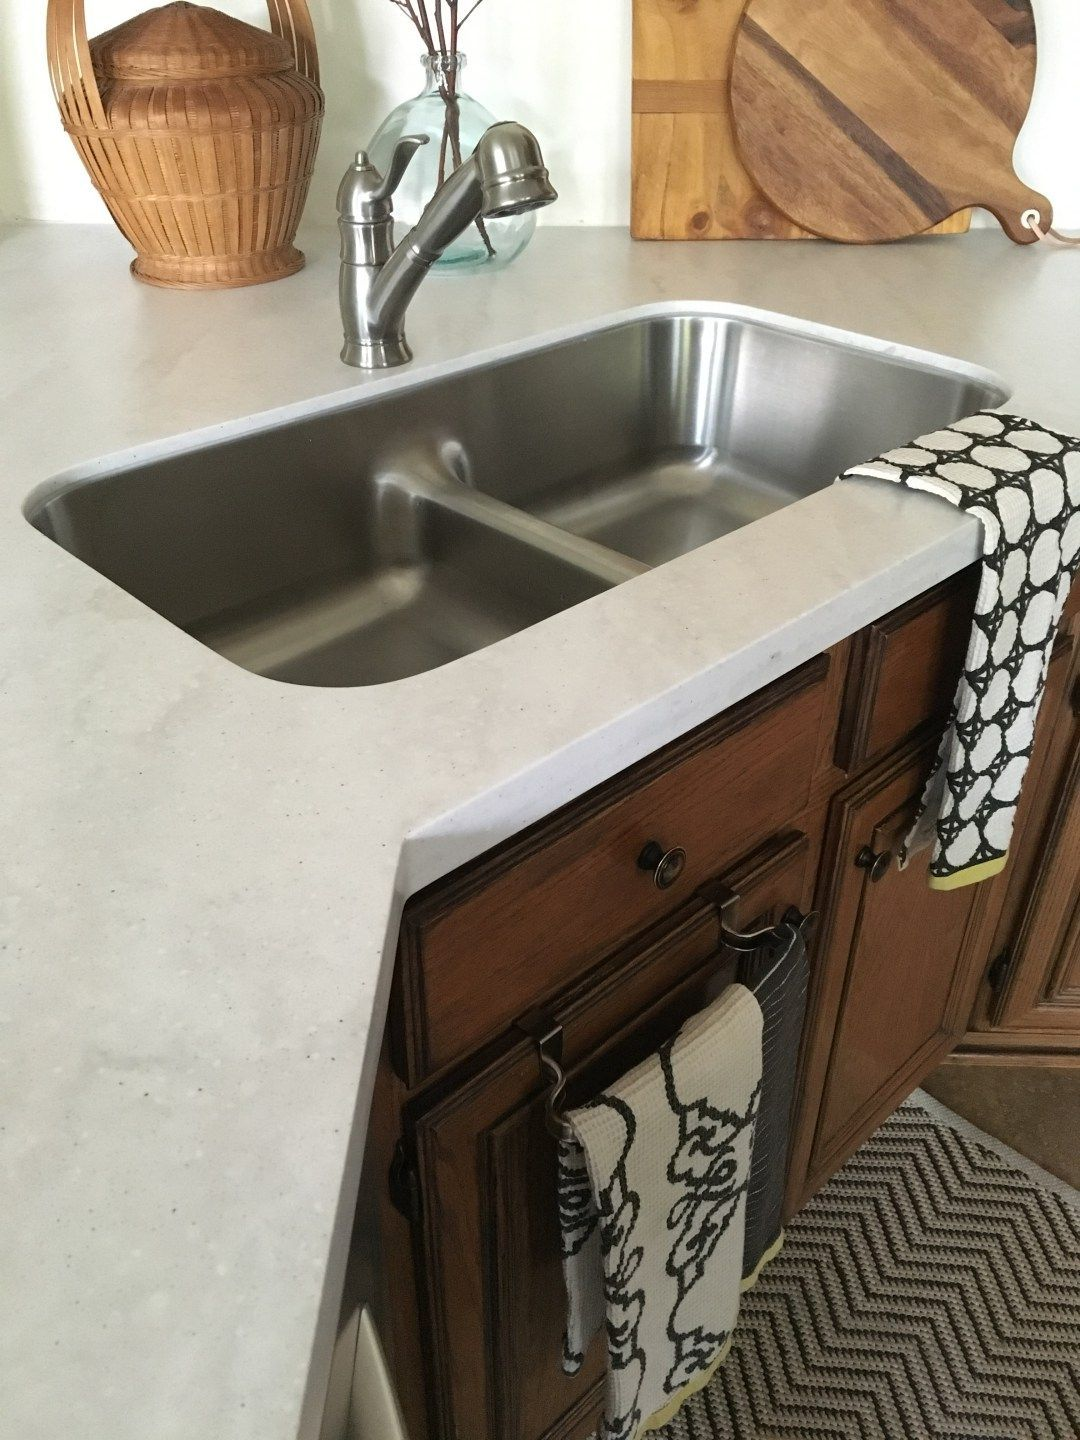 123 Reference Of Diy Solid Surface Kitchen Countertops In 2020 Idee